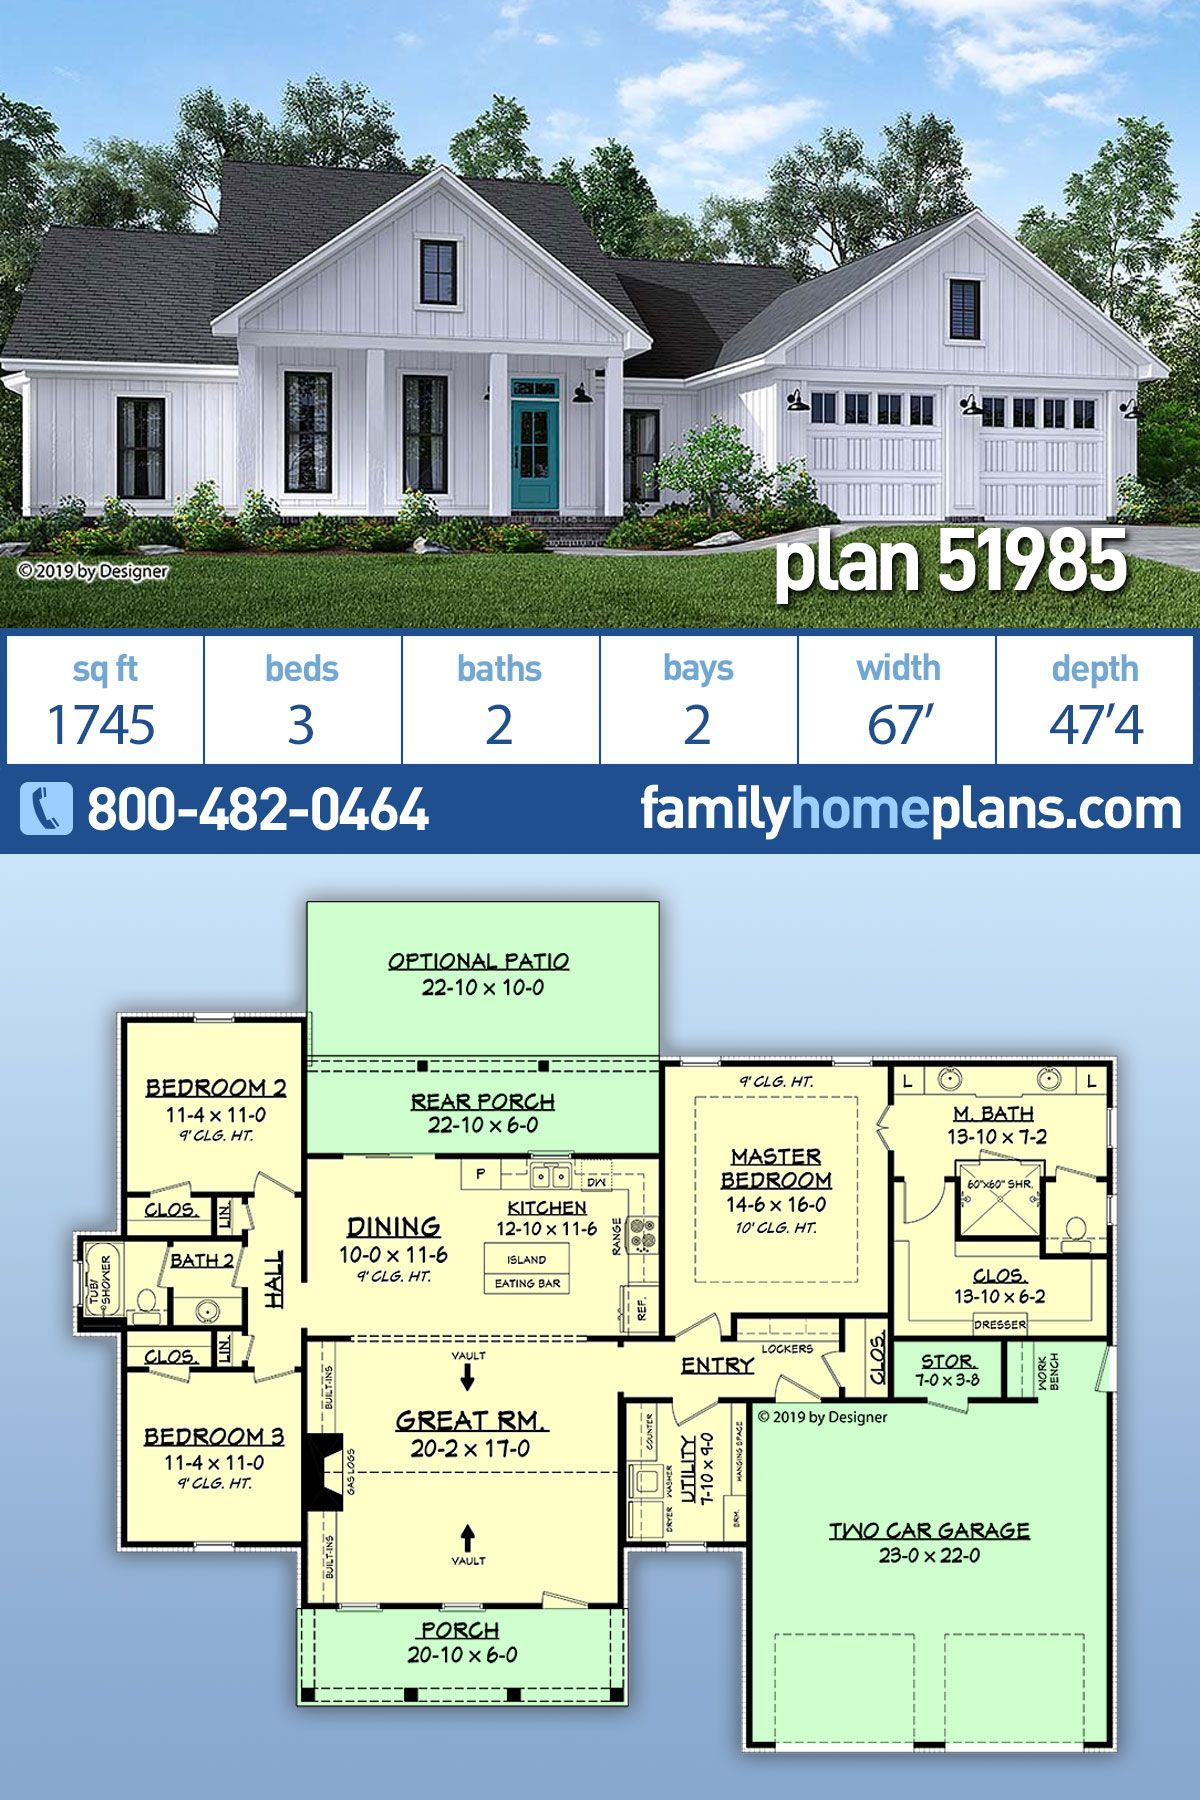 Southern Style House Plan 51985 With 3 Bed 2 Bath 2 Car Garage Country House Design House Plans Farmhouse New House Plans